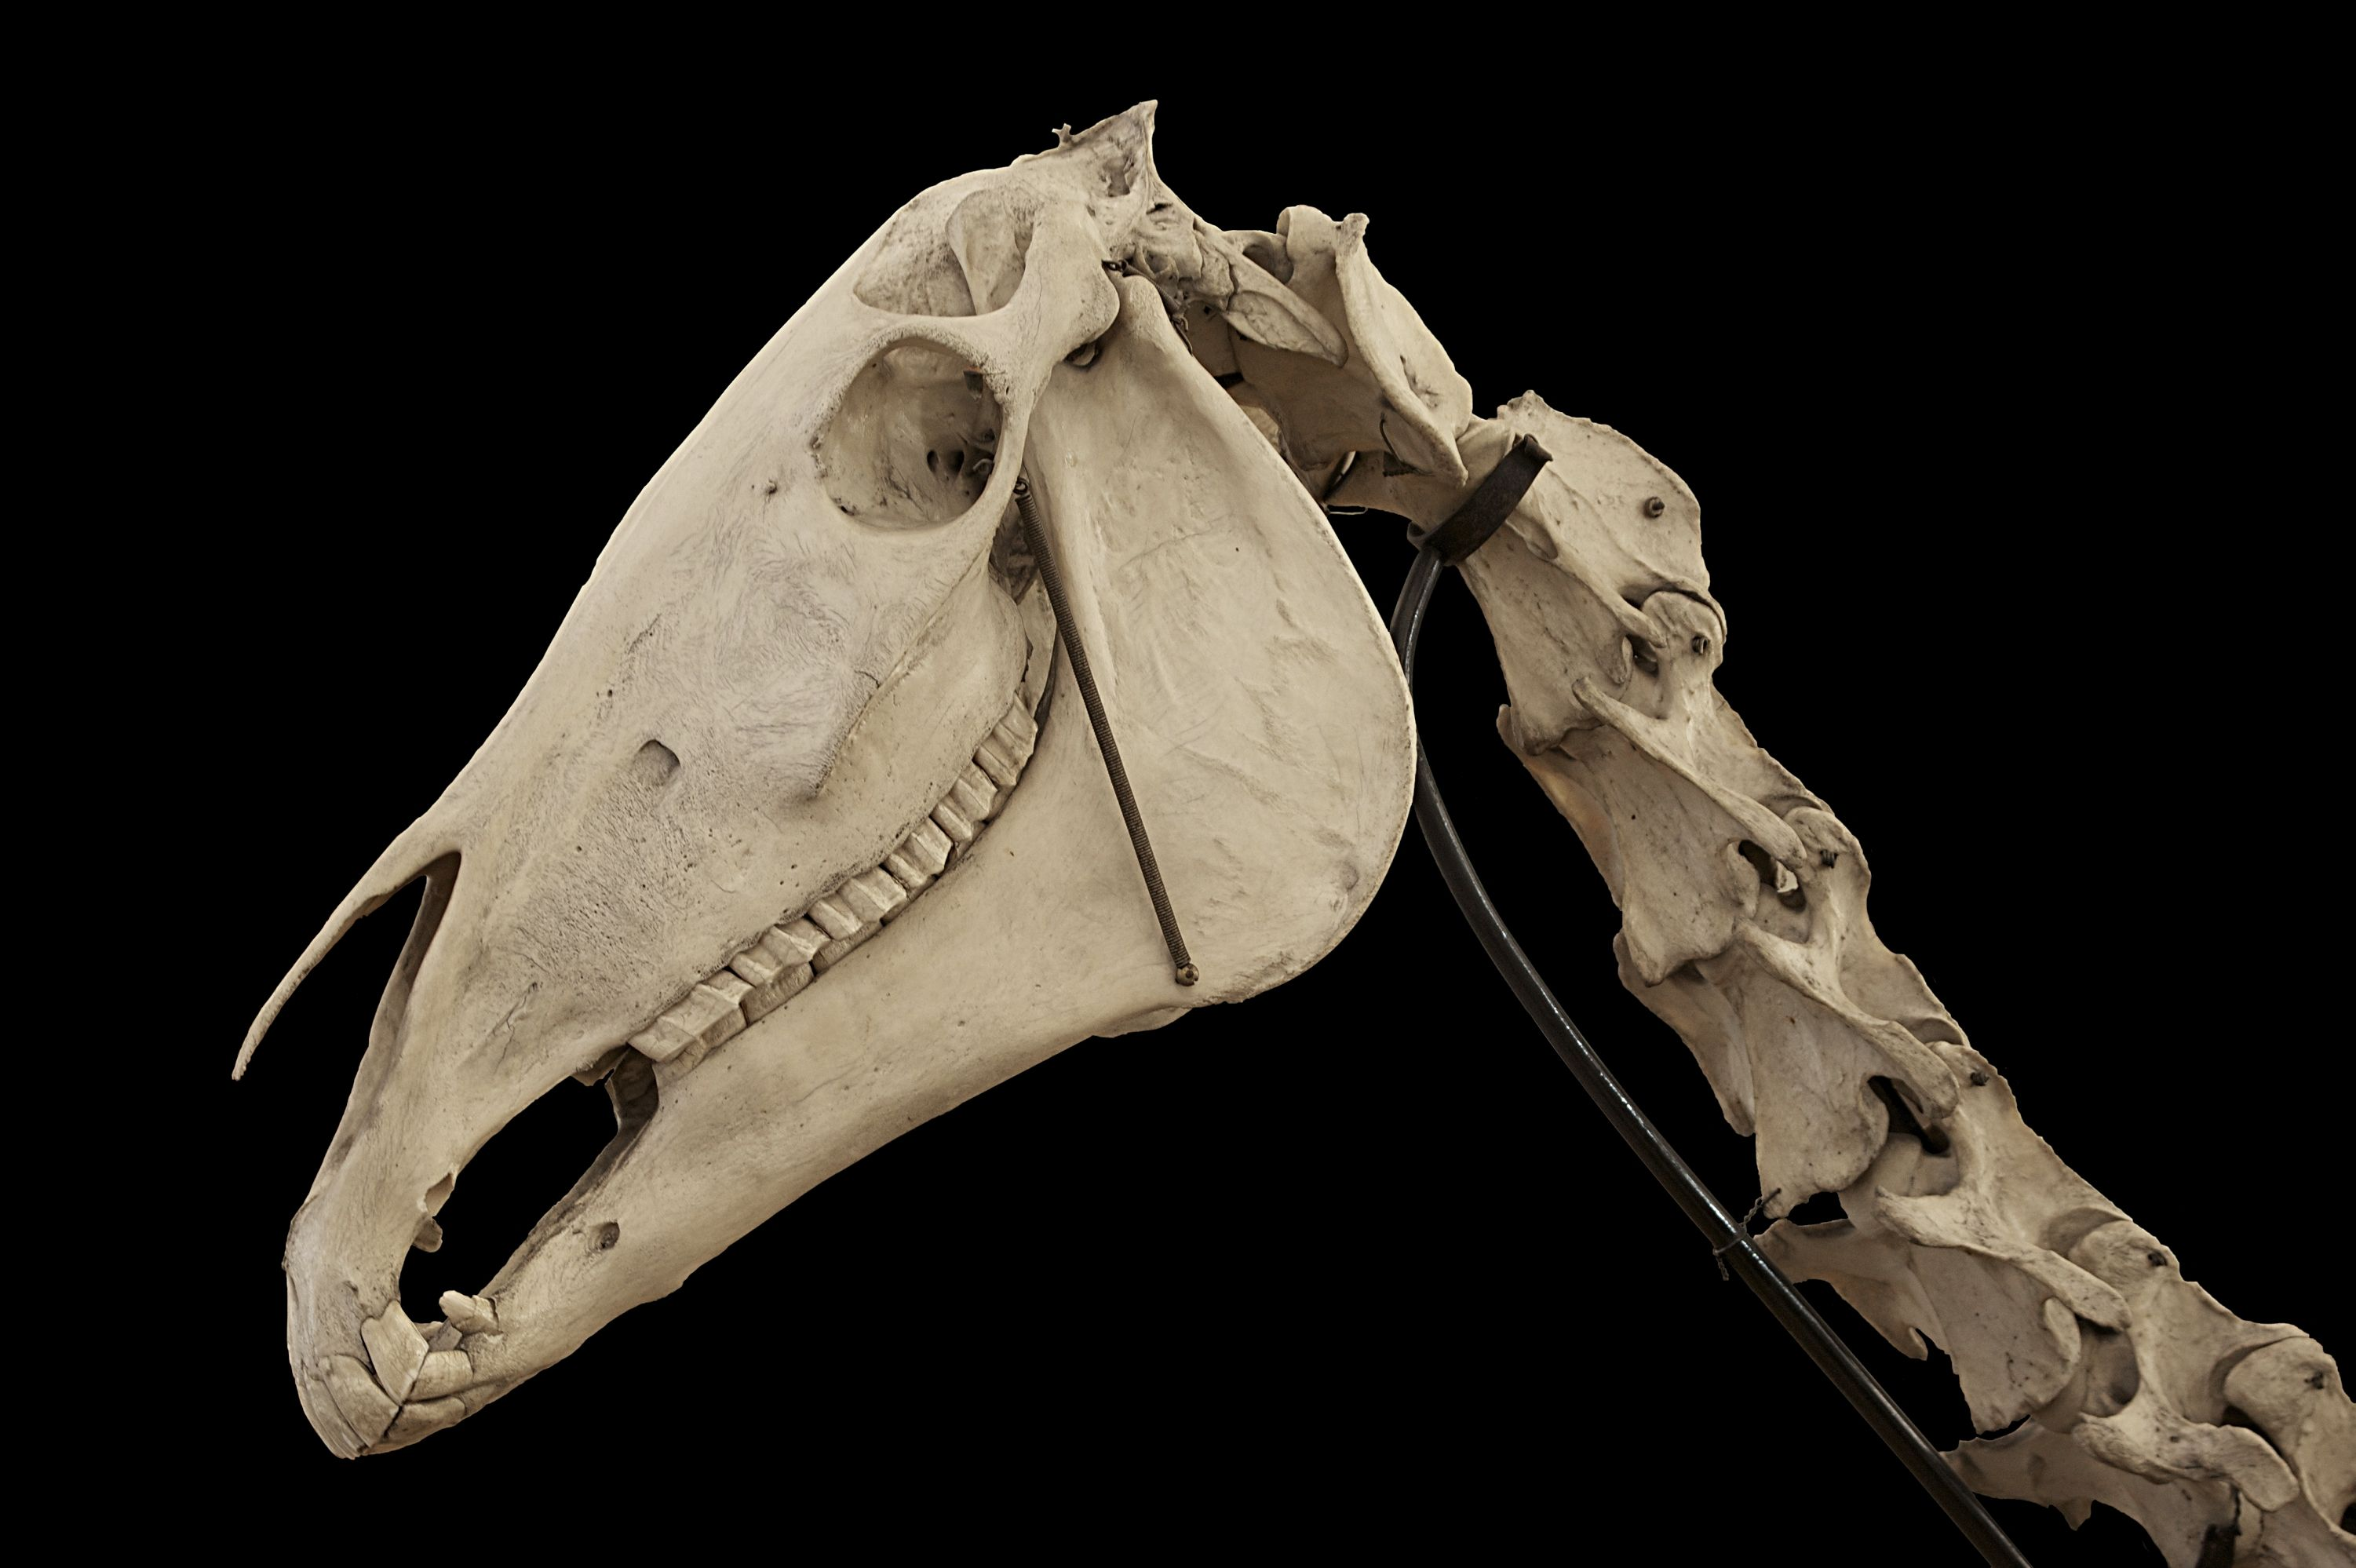 Pin By Jim T On Animal Skulls In 2019 Horse Skull Horses Horse Bones